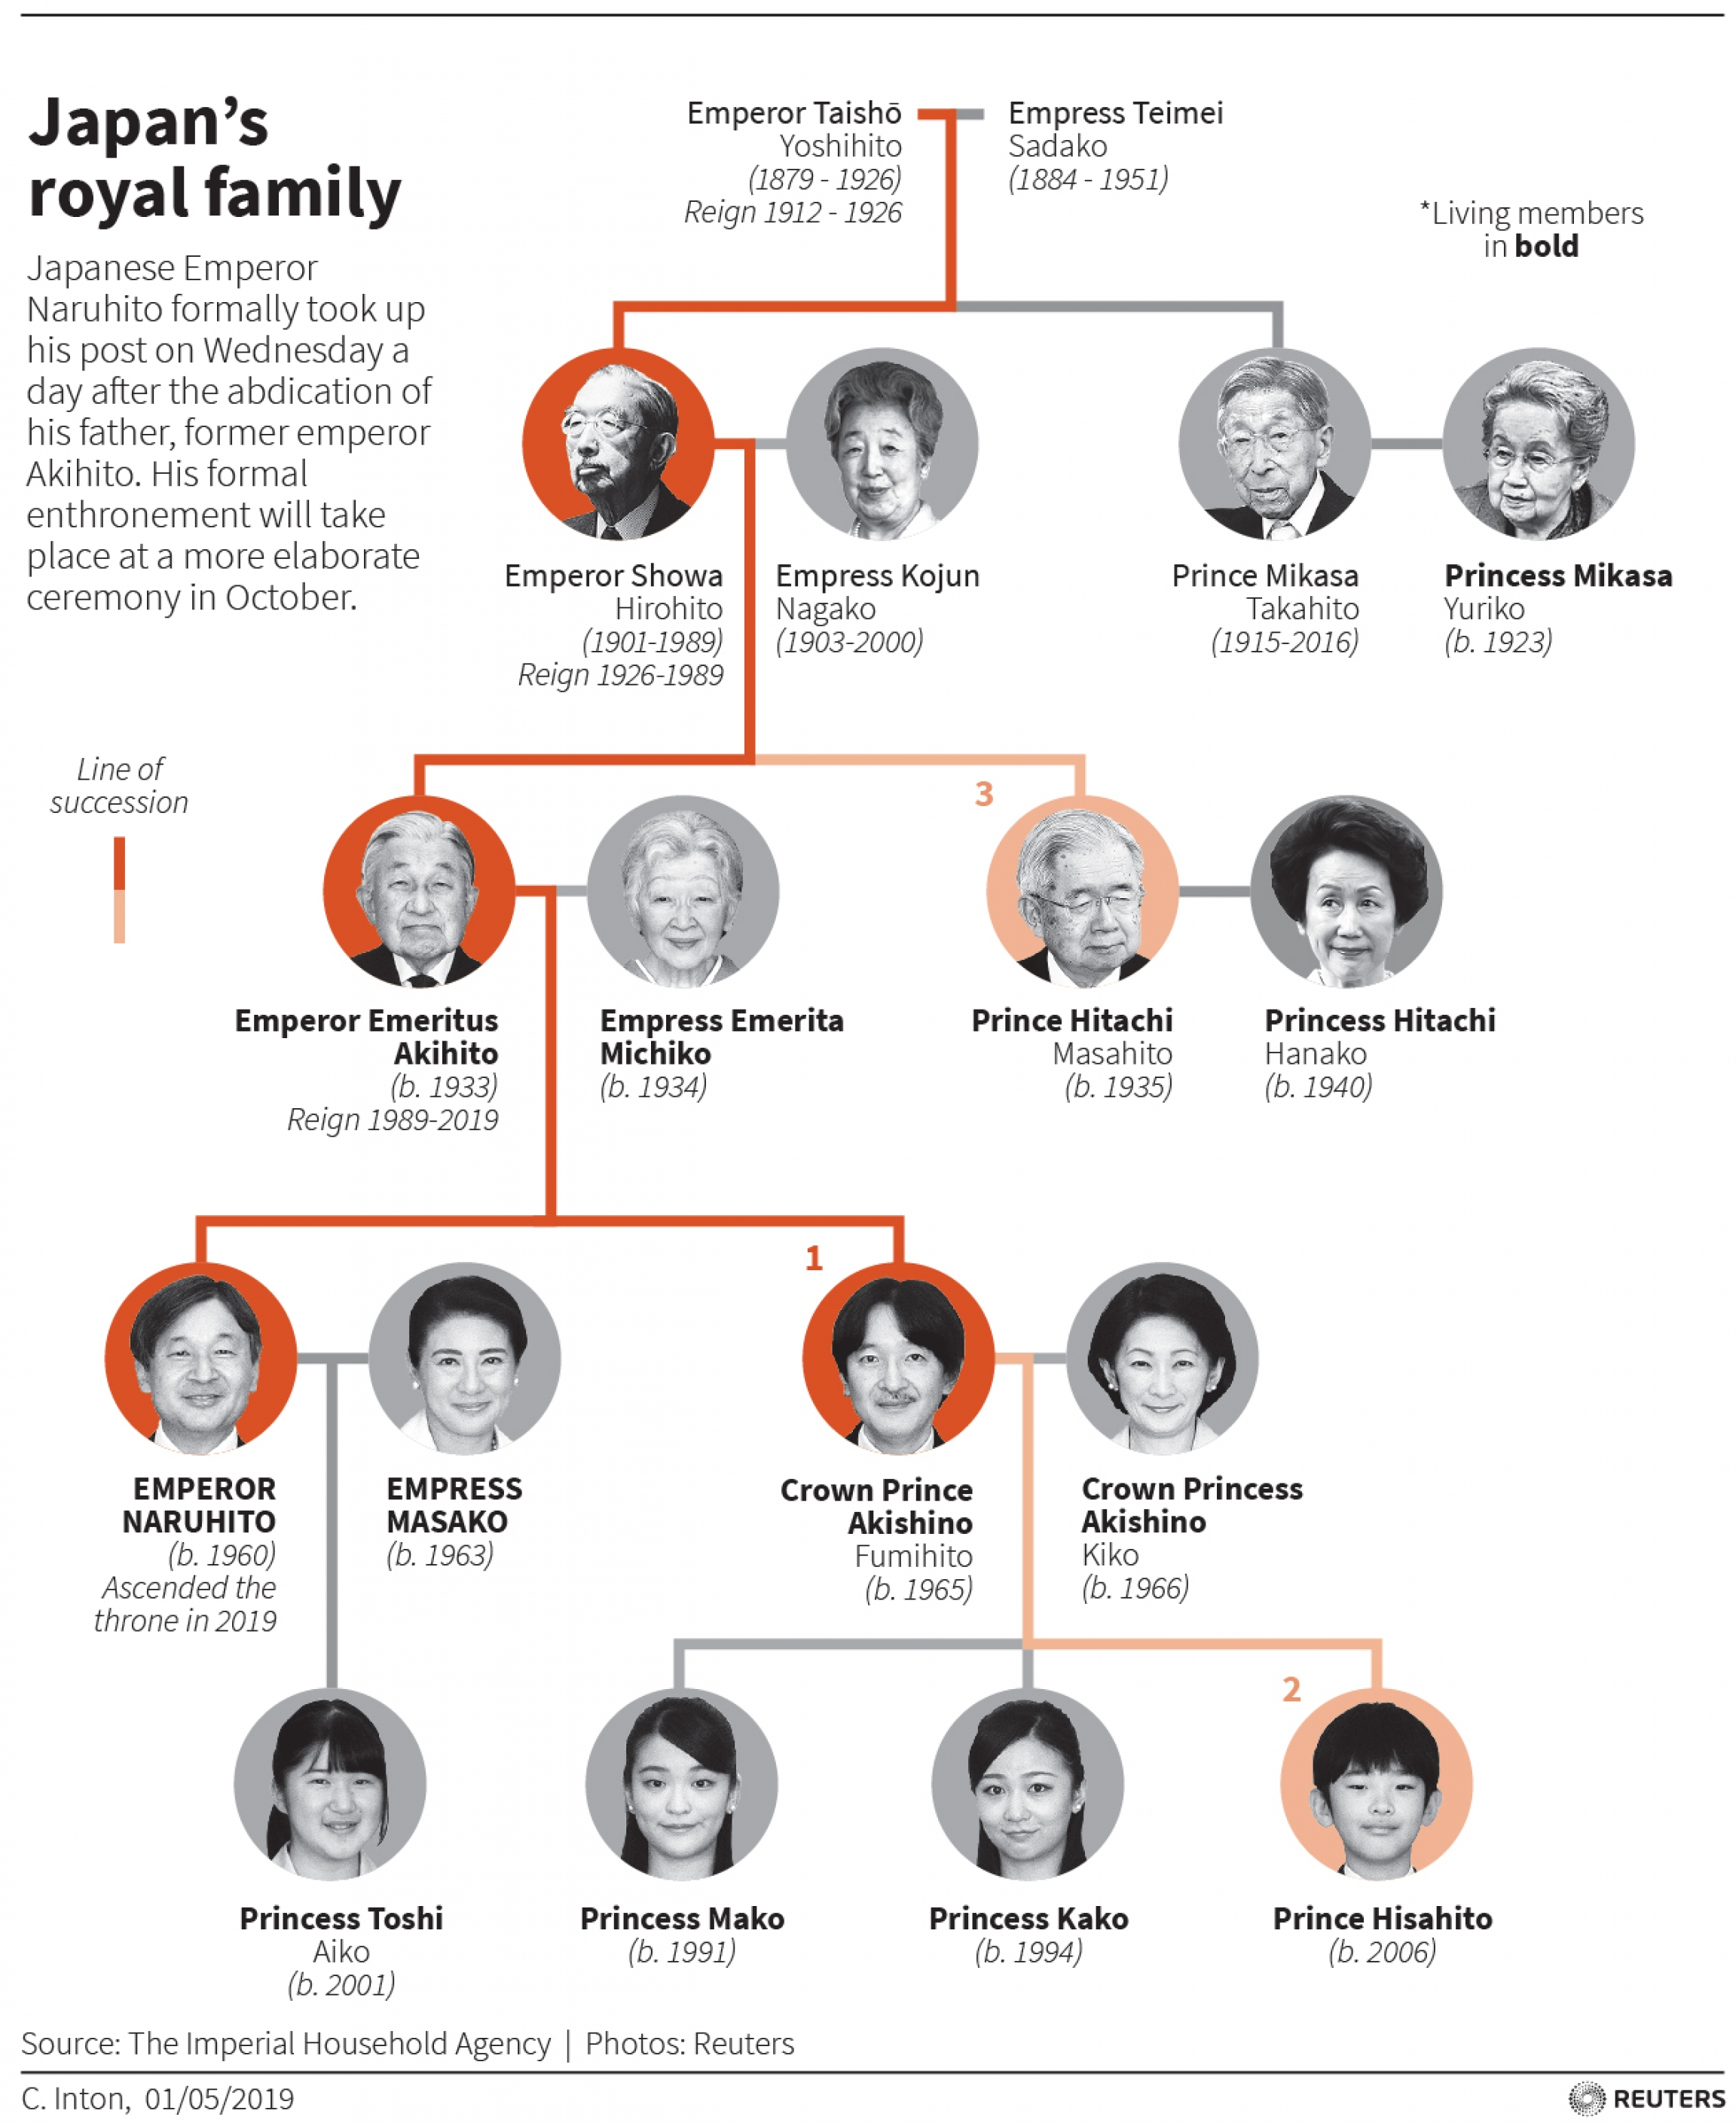 A family tree showing the Japanese royal family